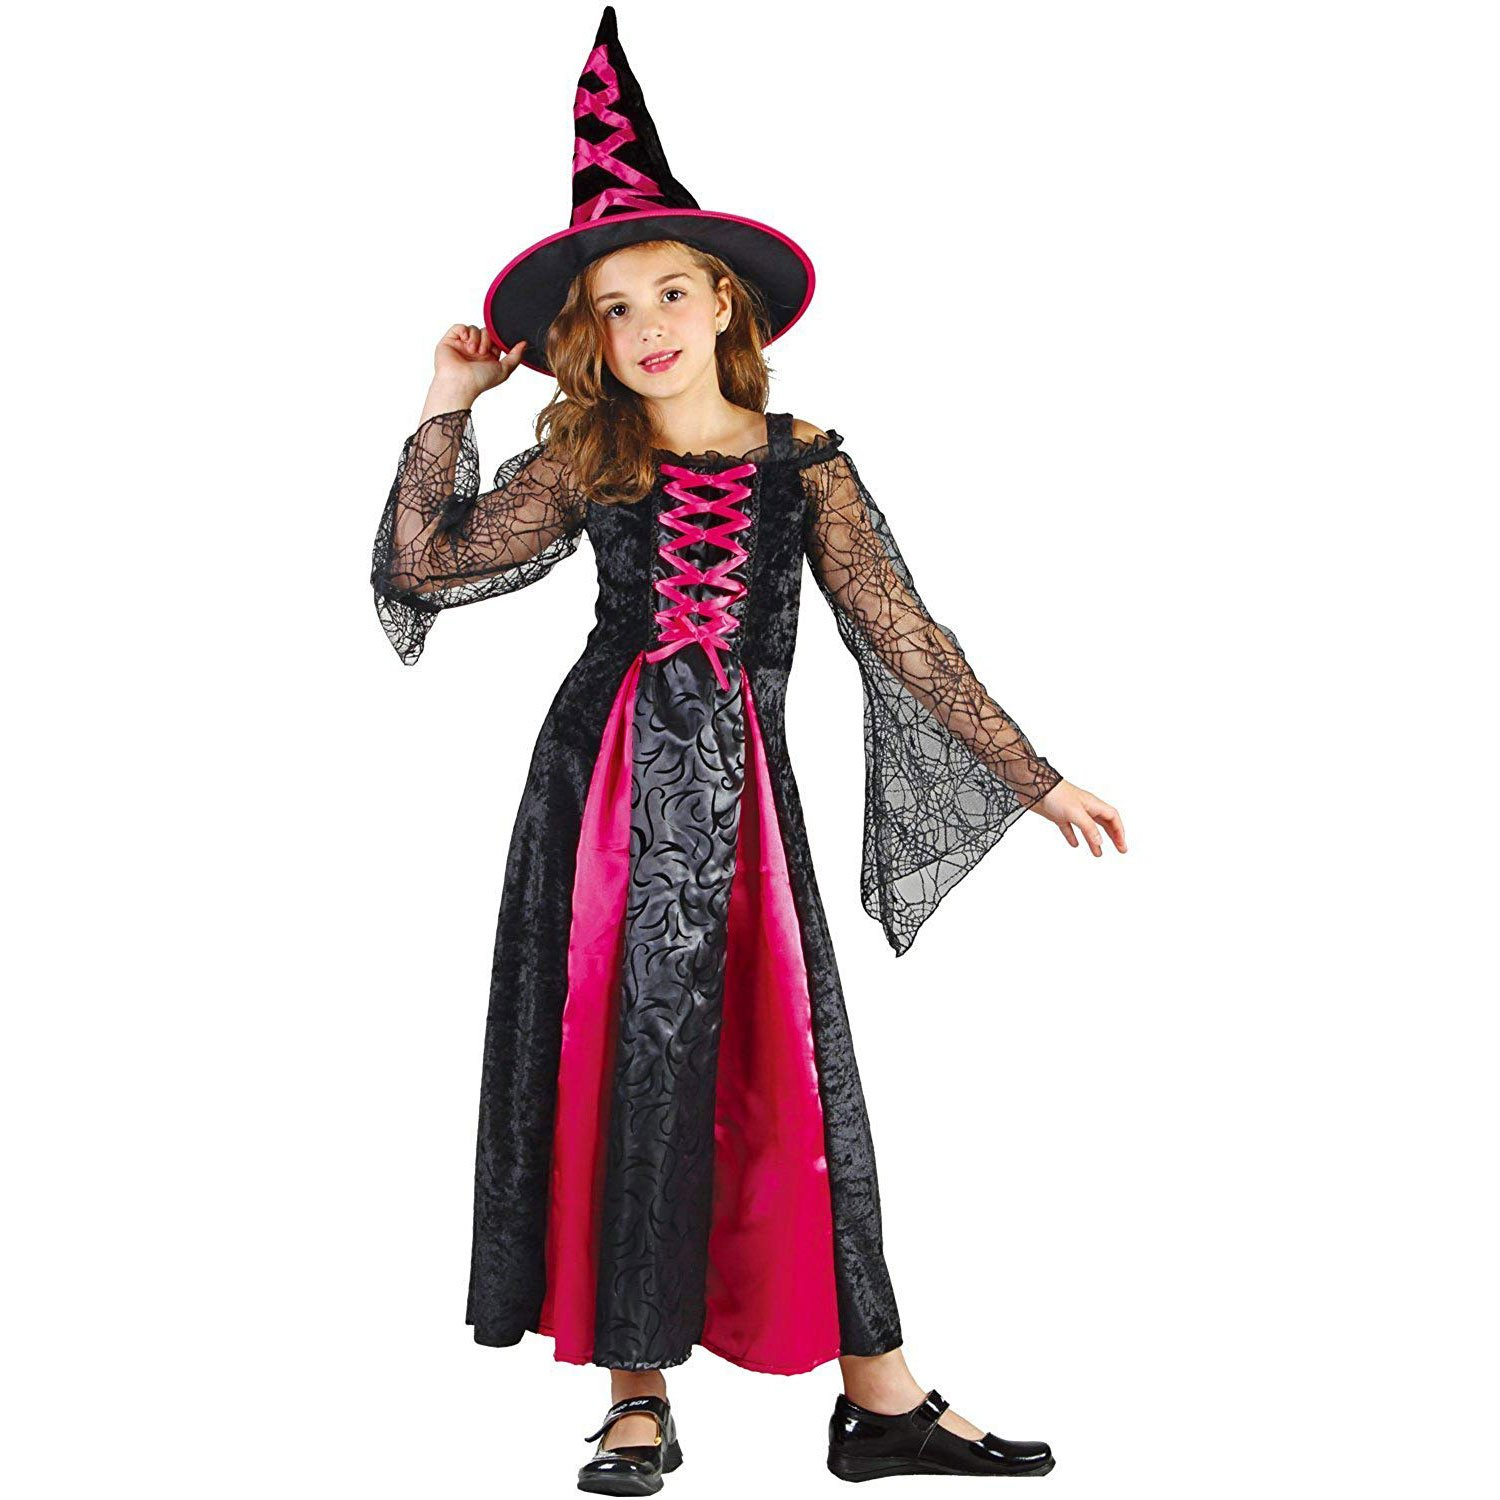 girls witch costume for halloween 2018 | girls scary witch costume